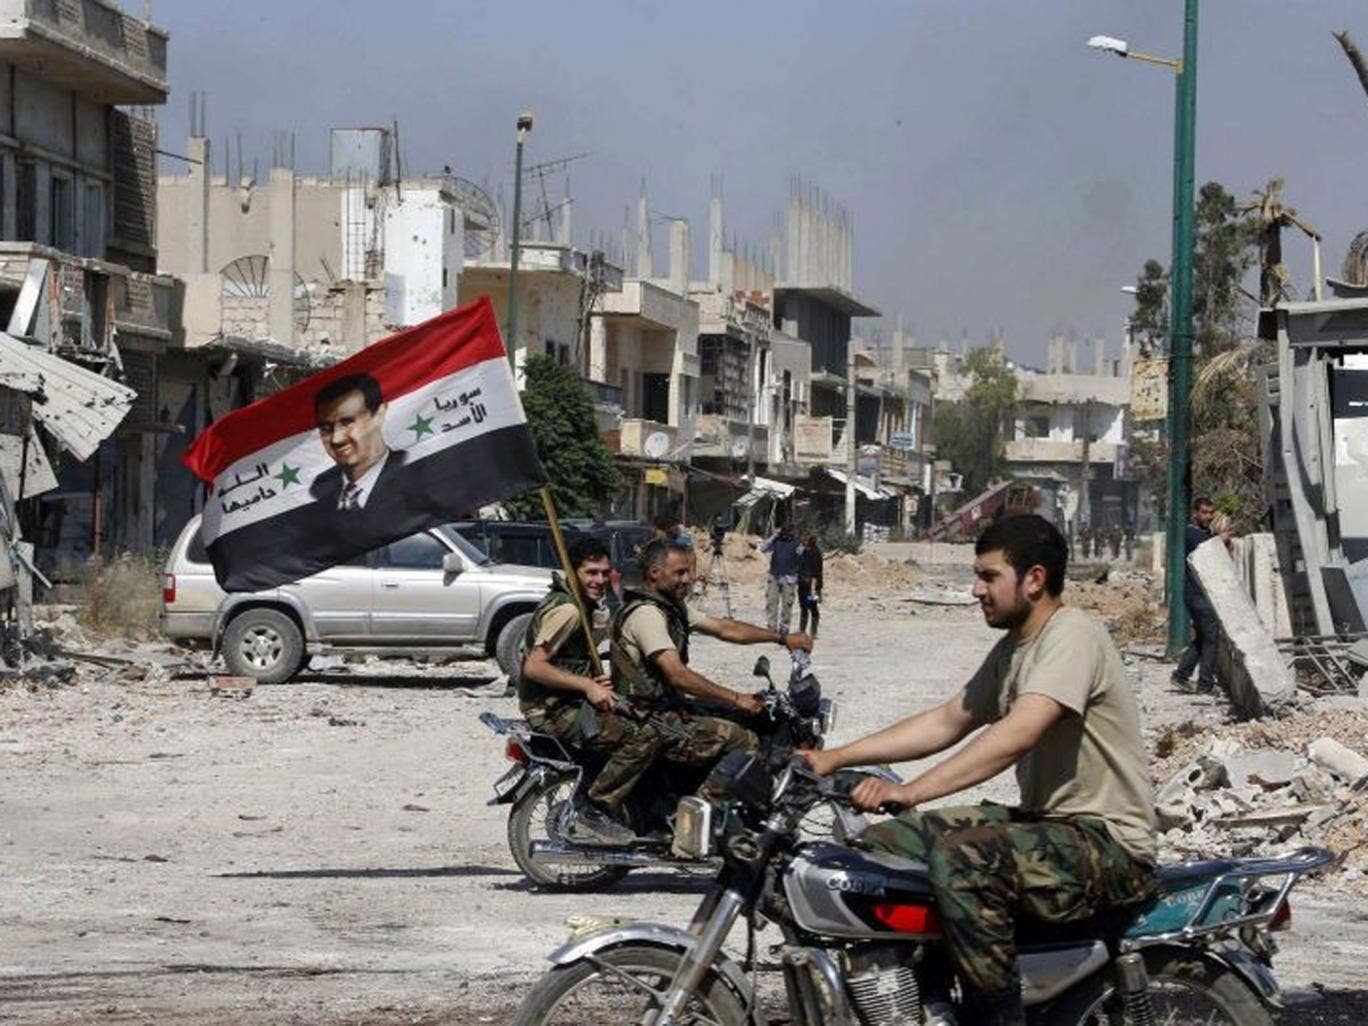 Flying the flag: Forces loyal to President Assad celebrate as the Syrian army take control in Qusair in June